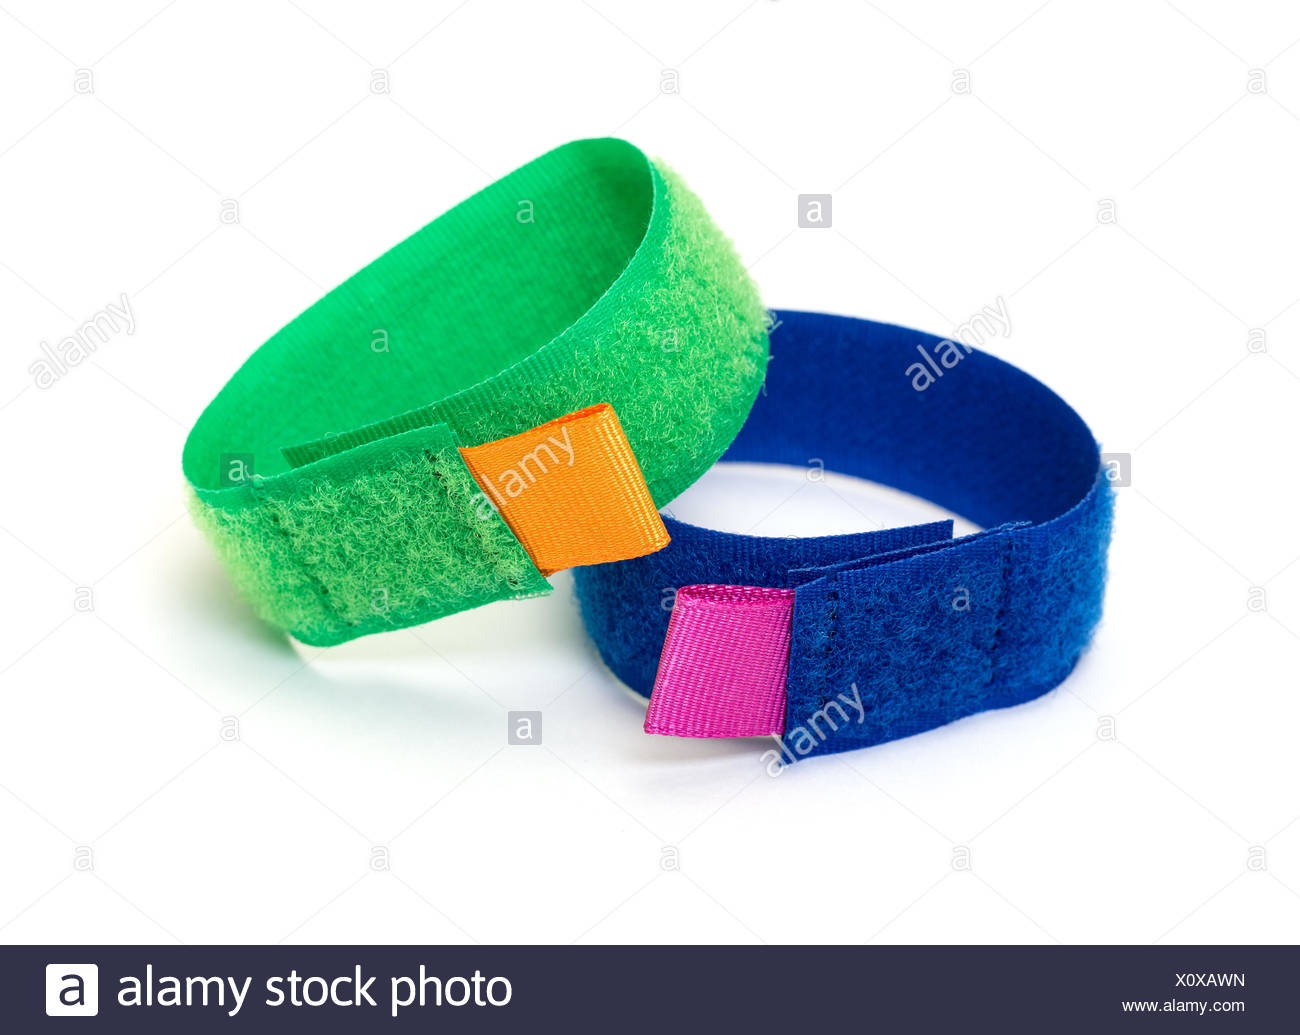 Rings from Colorful Velcro Strips - Stock Image